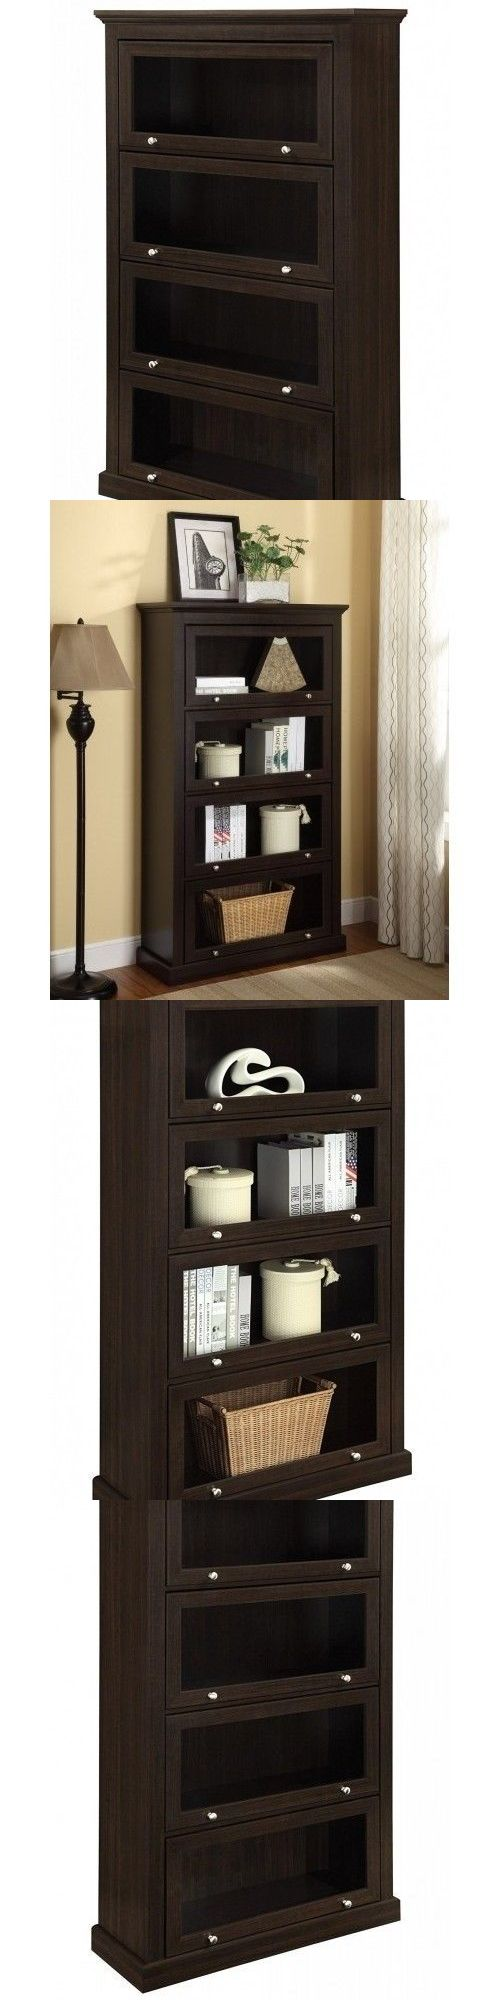 Bookcases 115749: 4-Shelf Display Bookcase Shelves Media Barrister Cabinets Storage Glass Doors -> BUY IT NOW ONLY: $174.95 on eBay!